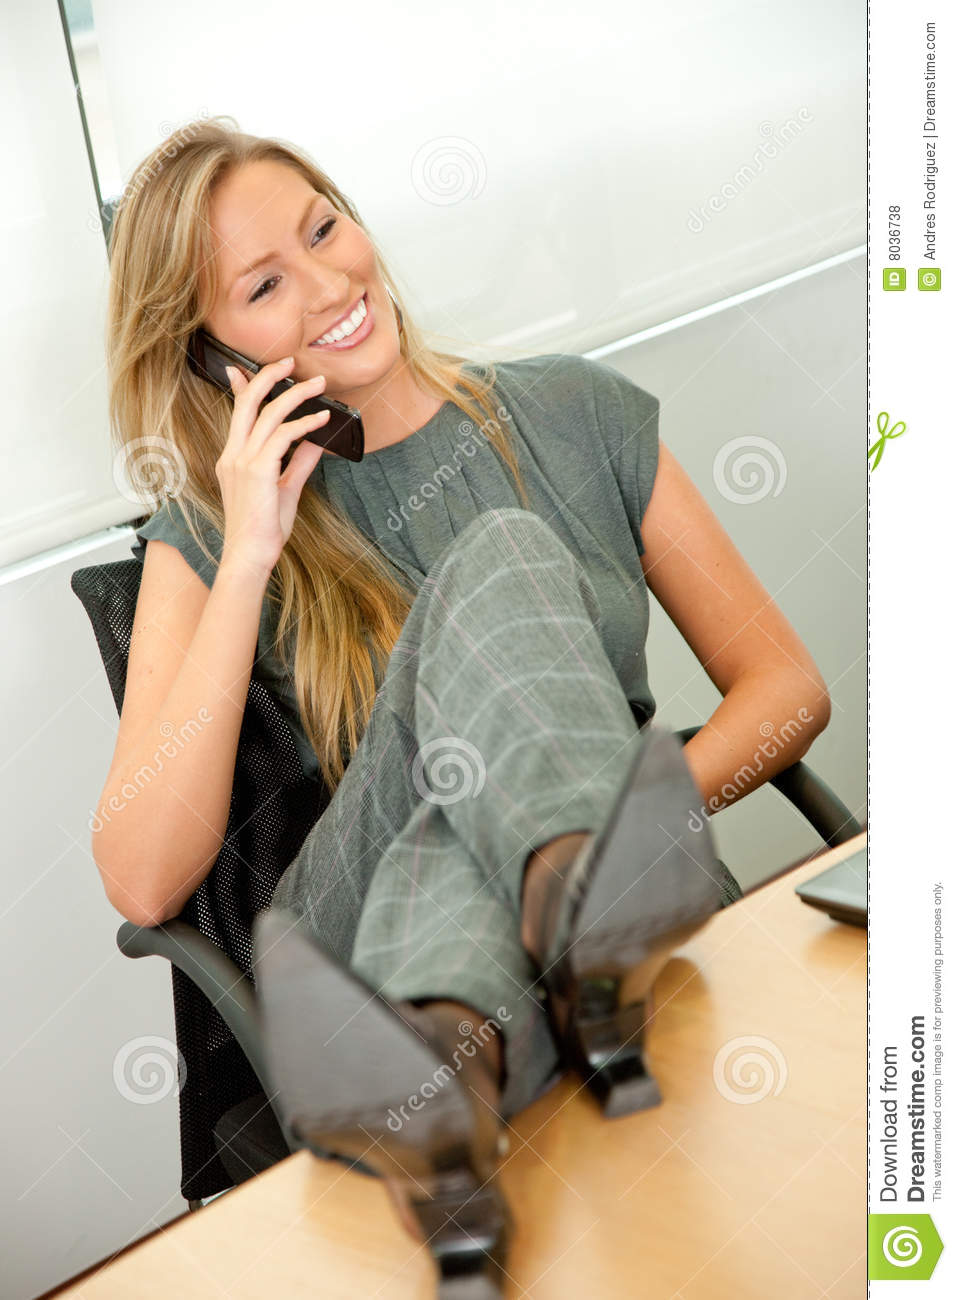 Business Woman On The Phone Royalty Free Stock Photos - Image: 8036738